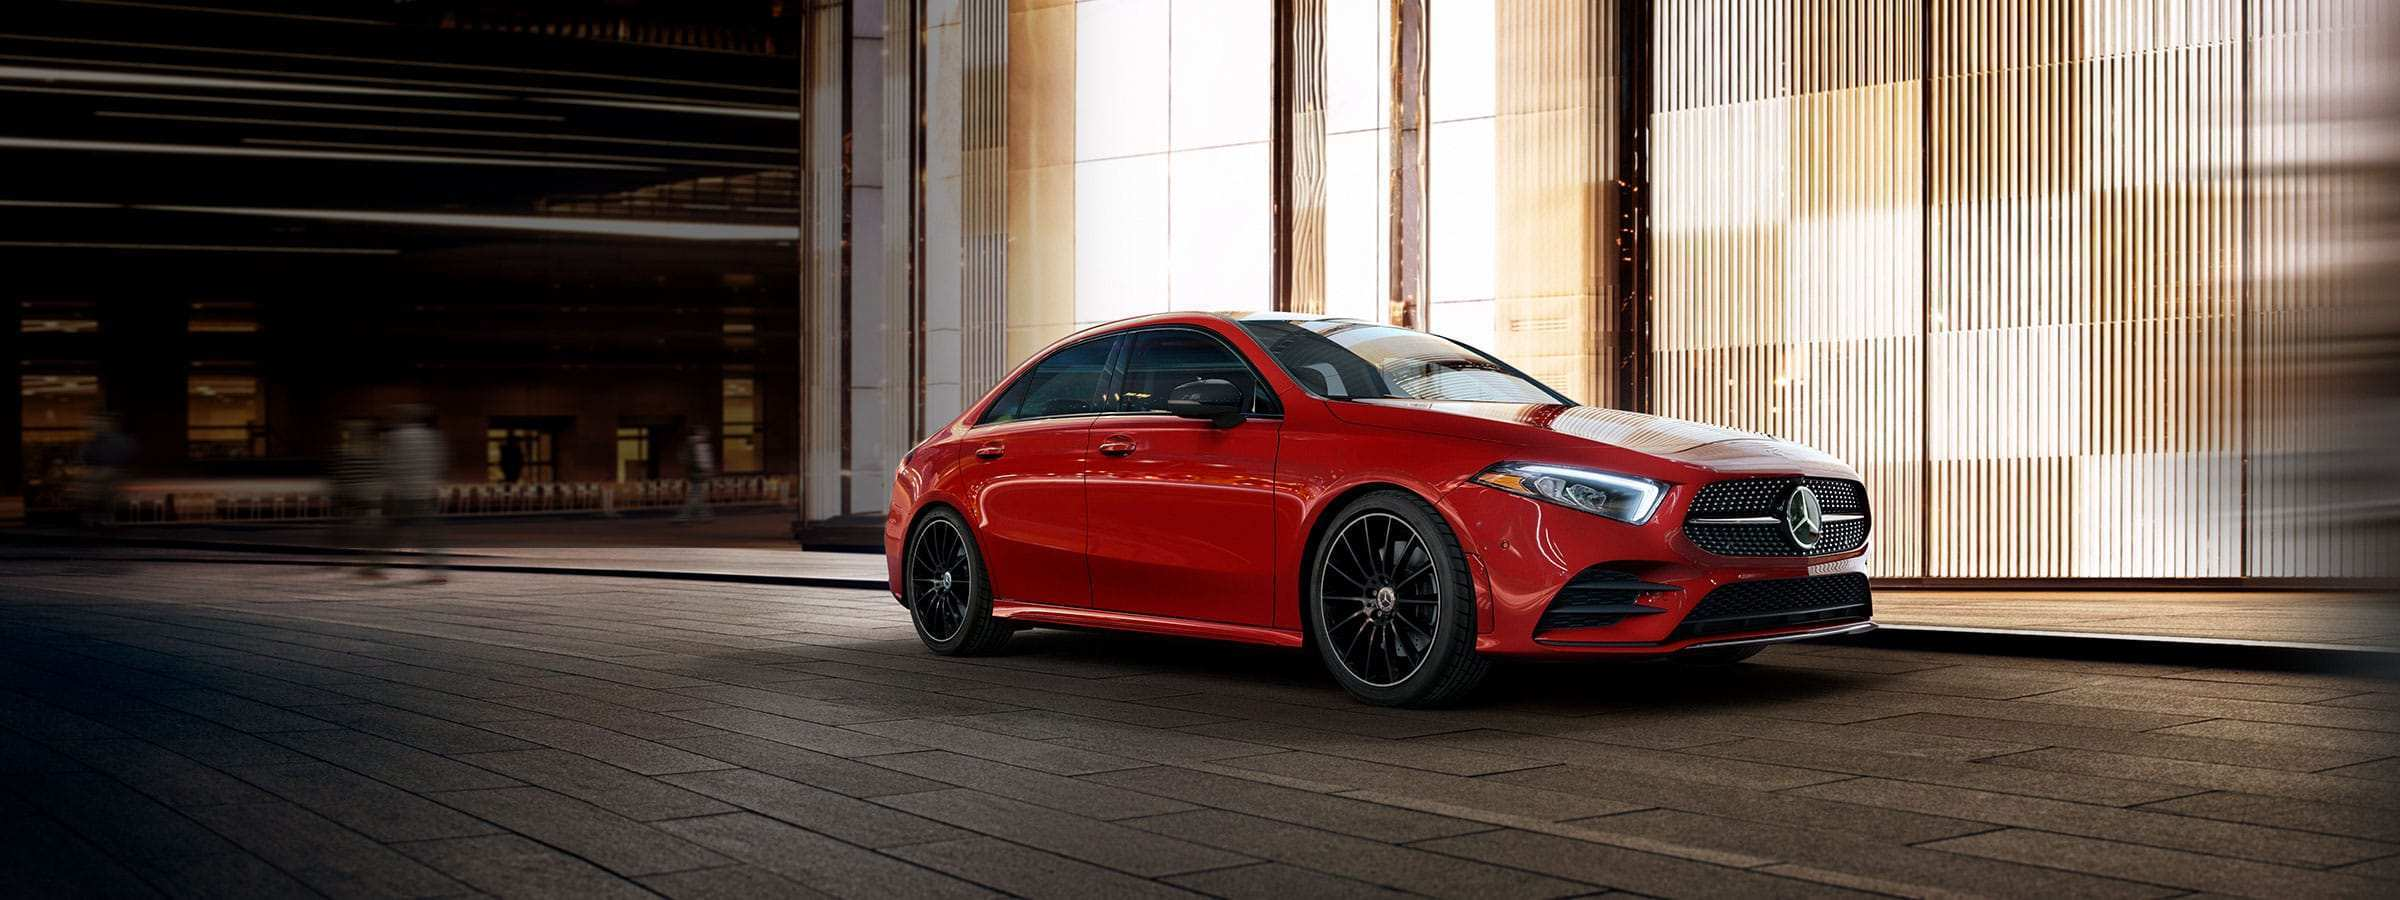 11 The Mercedes 2019 A Class Reviews